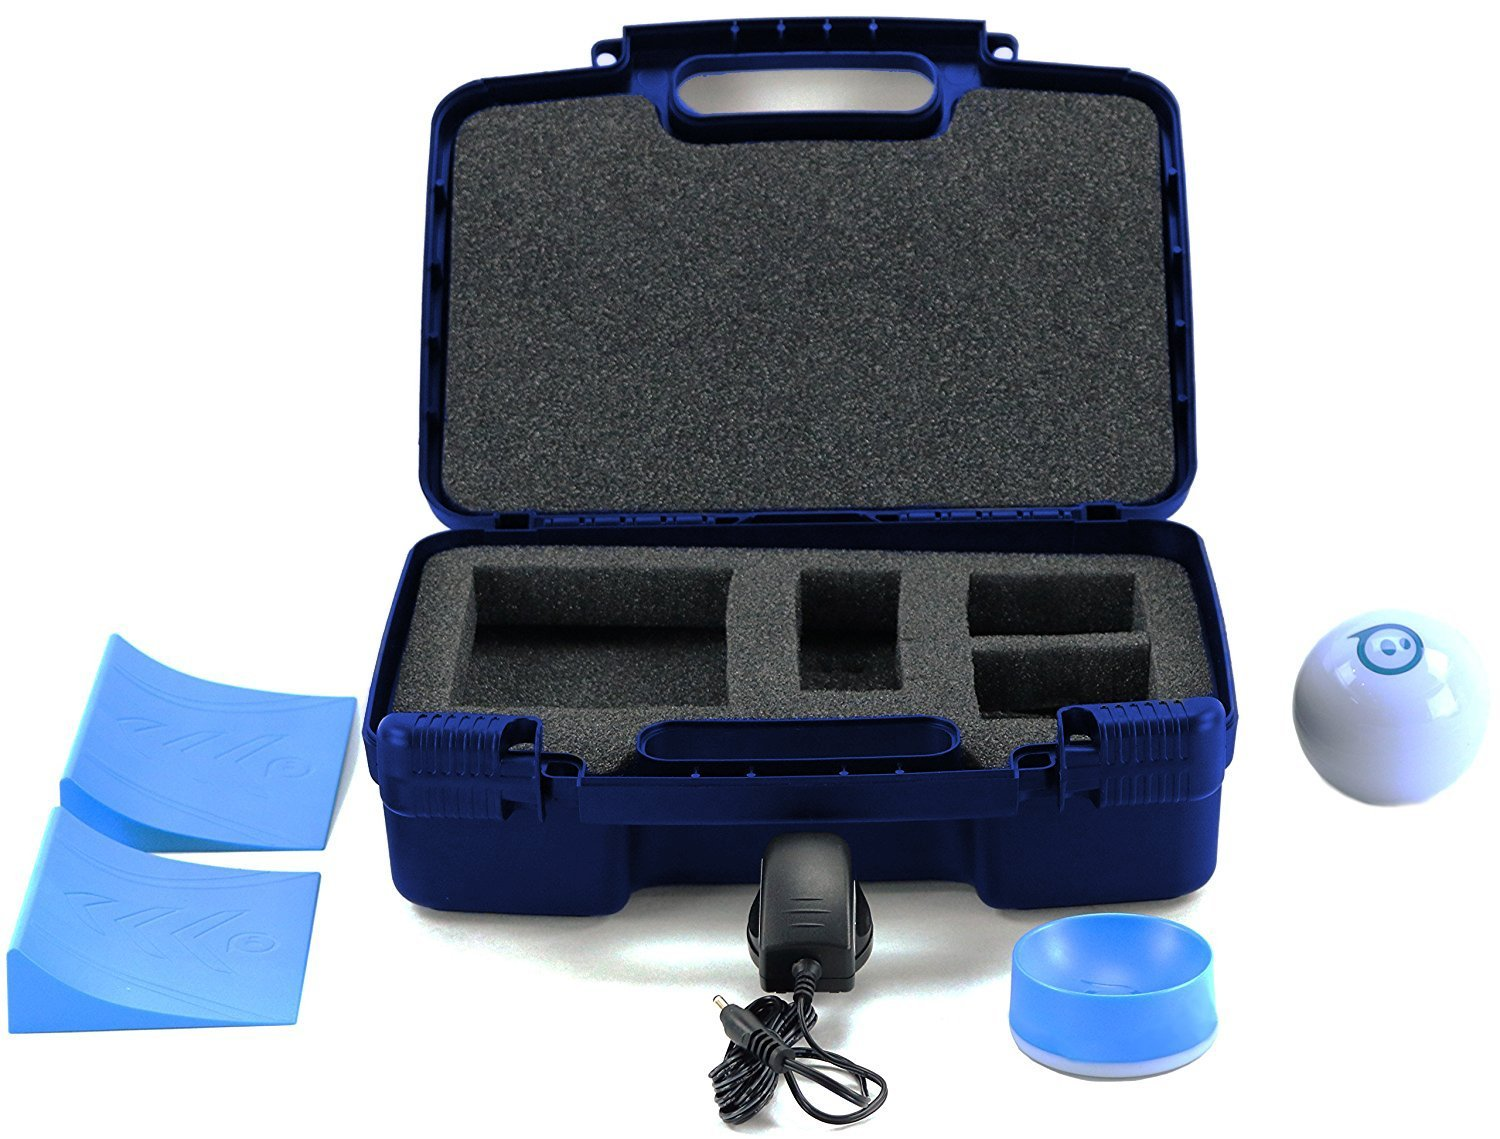 Life Made Better Storage Organizer - Compatible with Sphero 2.0 The App-Controlled Robot Ball and Accessories- Durable Carrying Case - Blue by Life Made Better (Image #2)